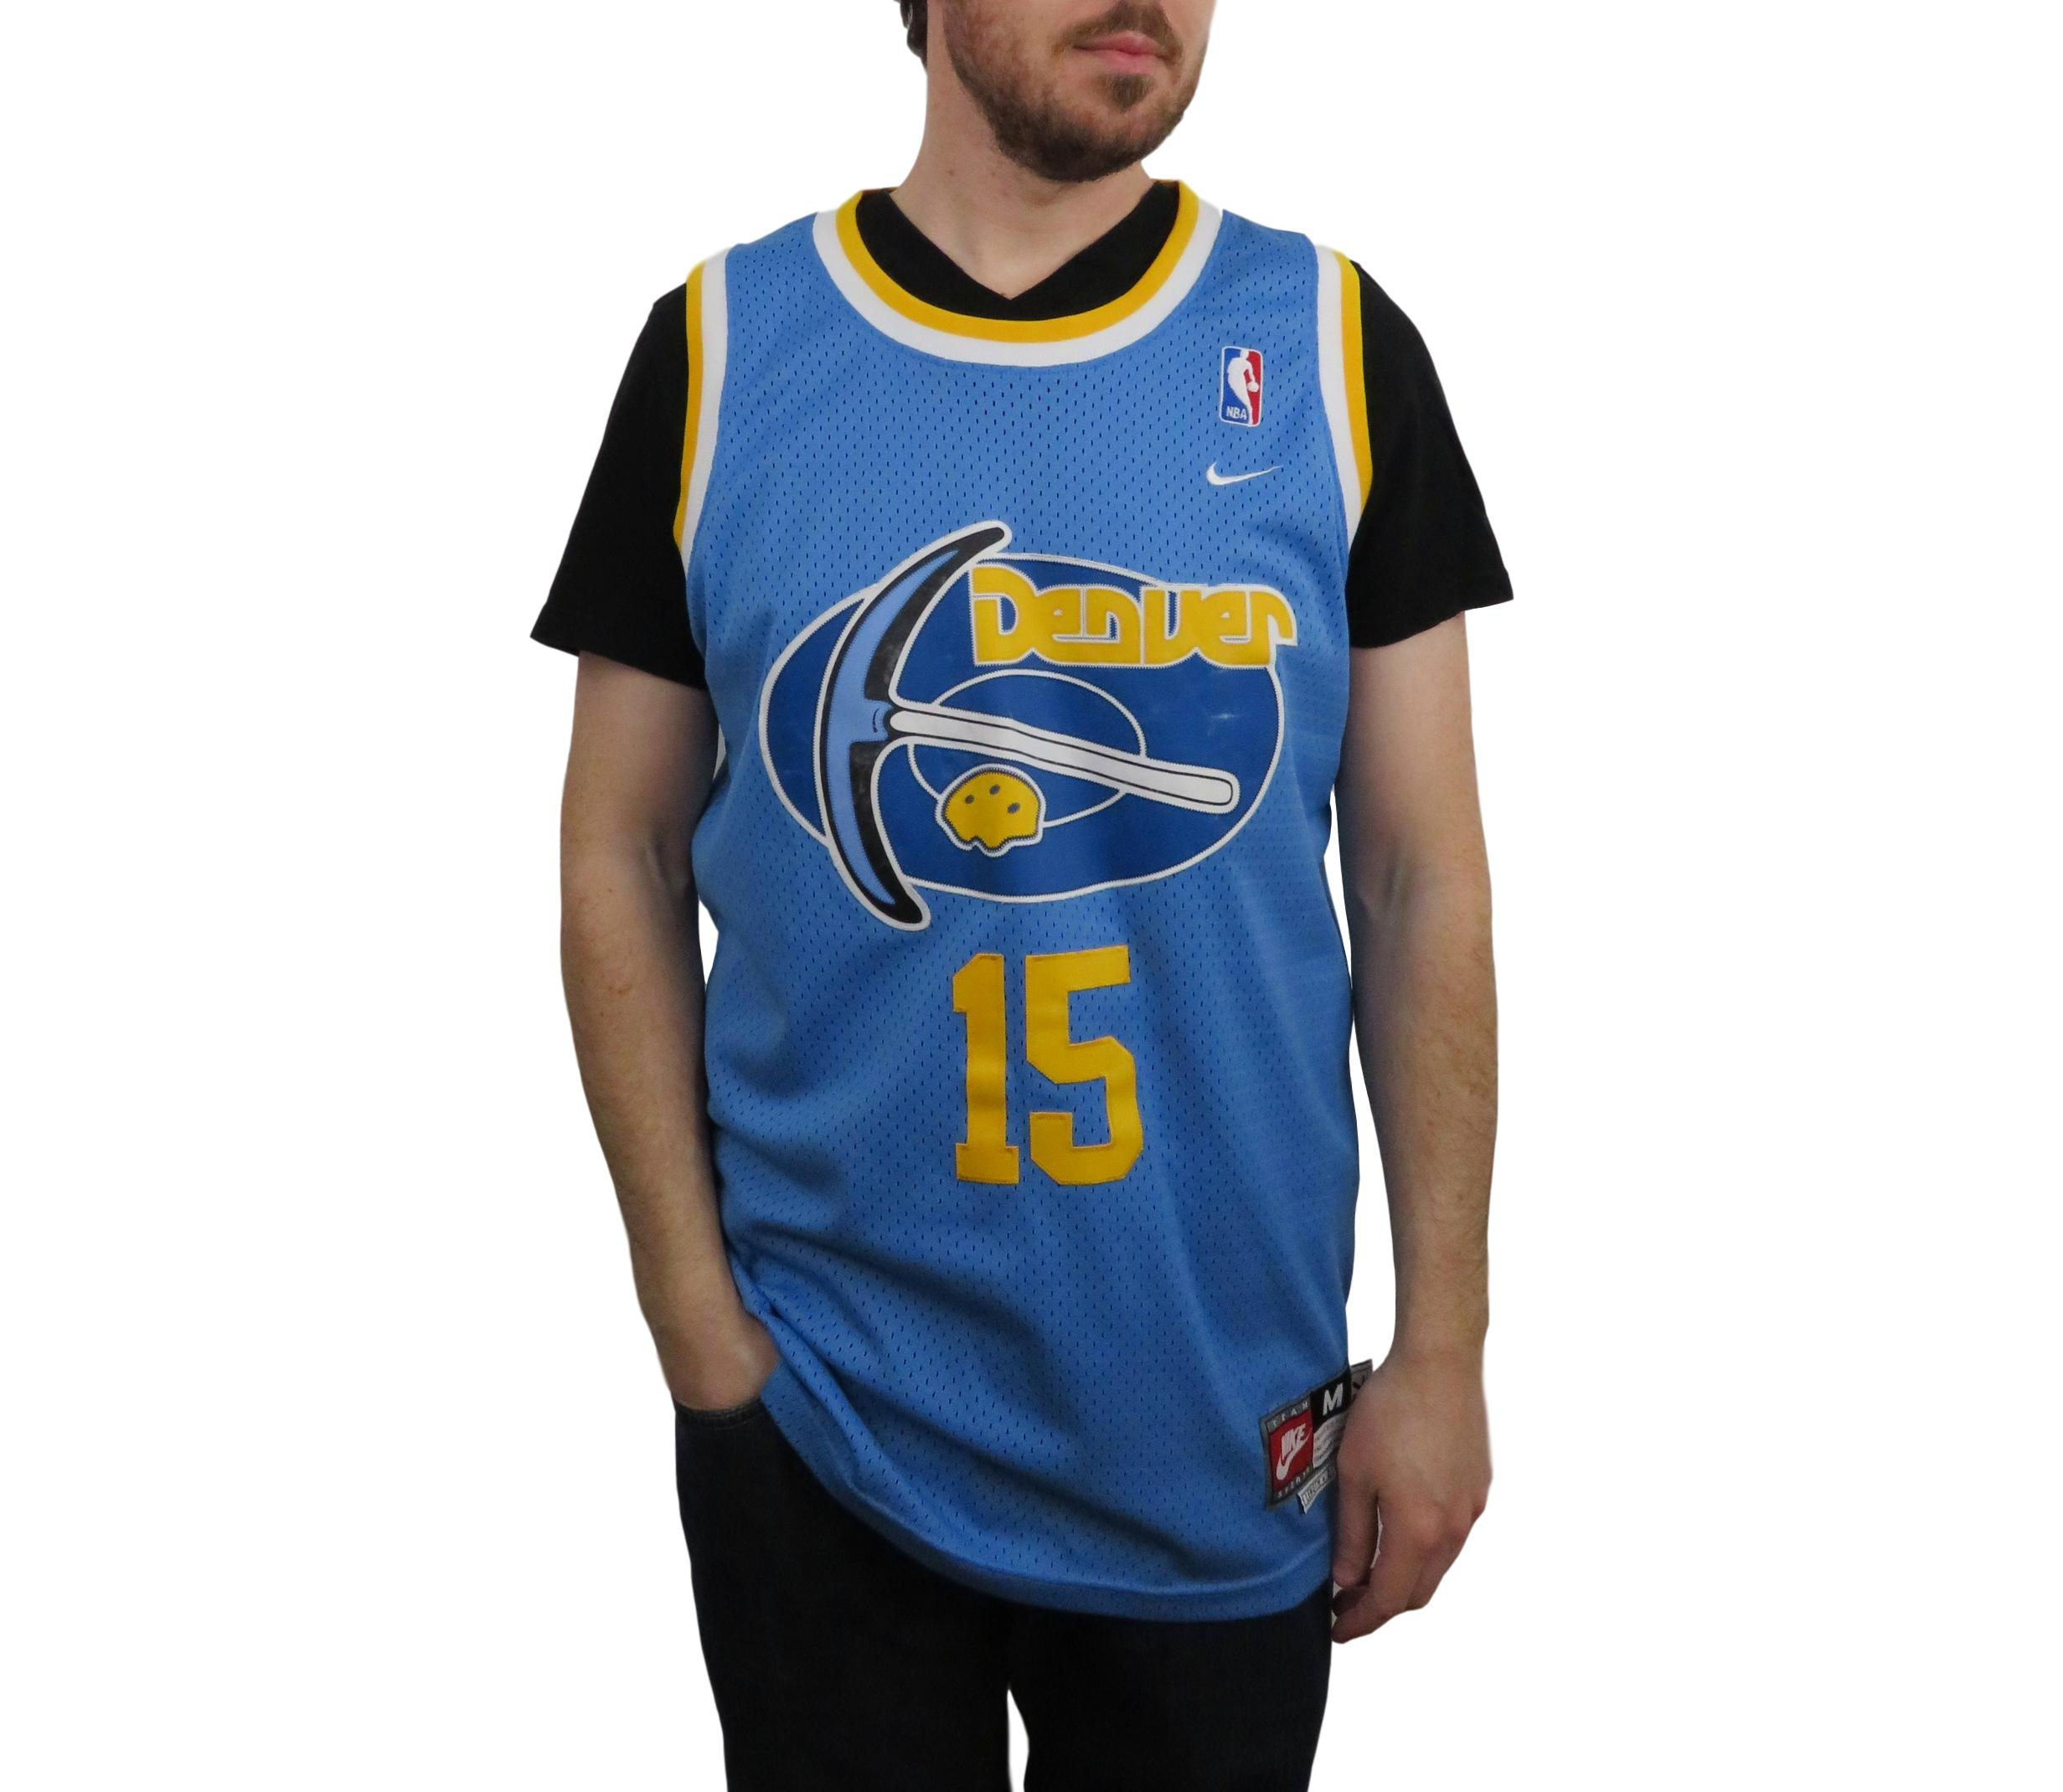 low priced ae42c 36b42 Vintage Fall 04 Nike Mens Carmelo Anthony Denver Nuggets NBA Jersey Medium  Rewind 76 Basketball Authentic Swingman Sewn Stiched Blue Yellow Retro ...